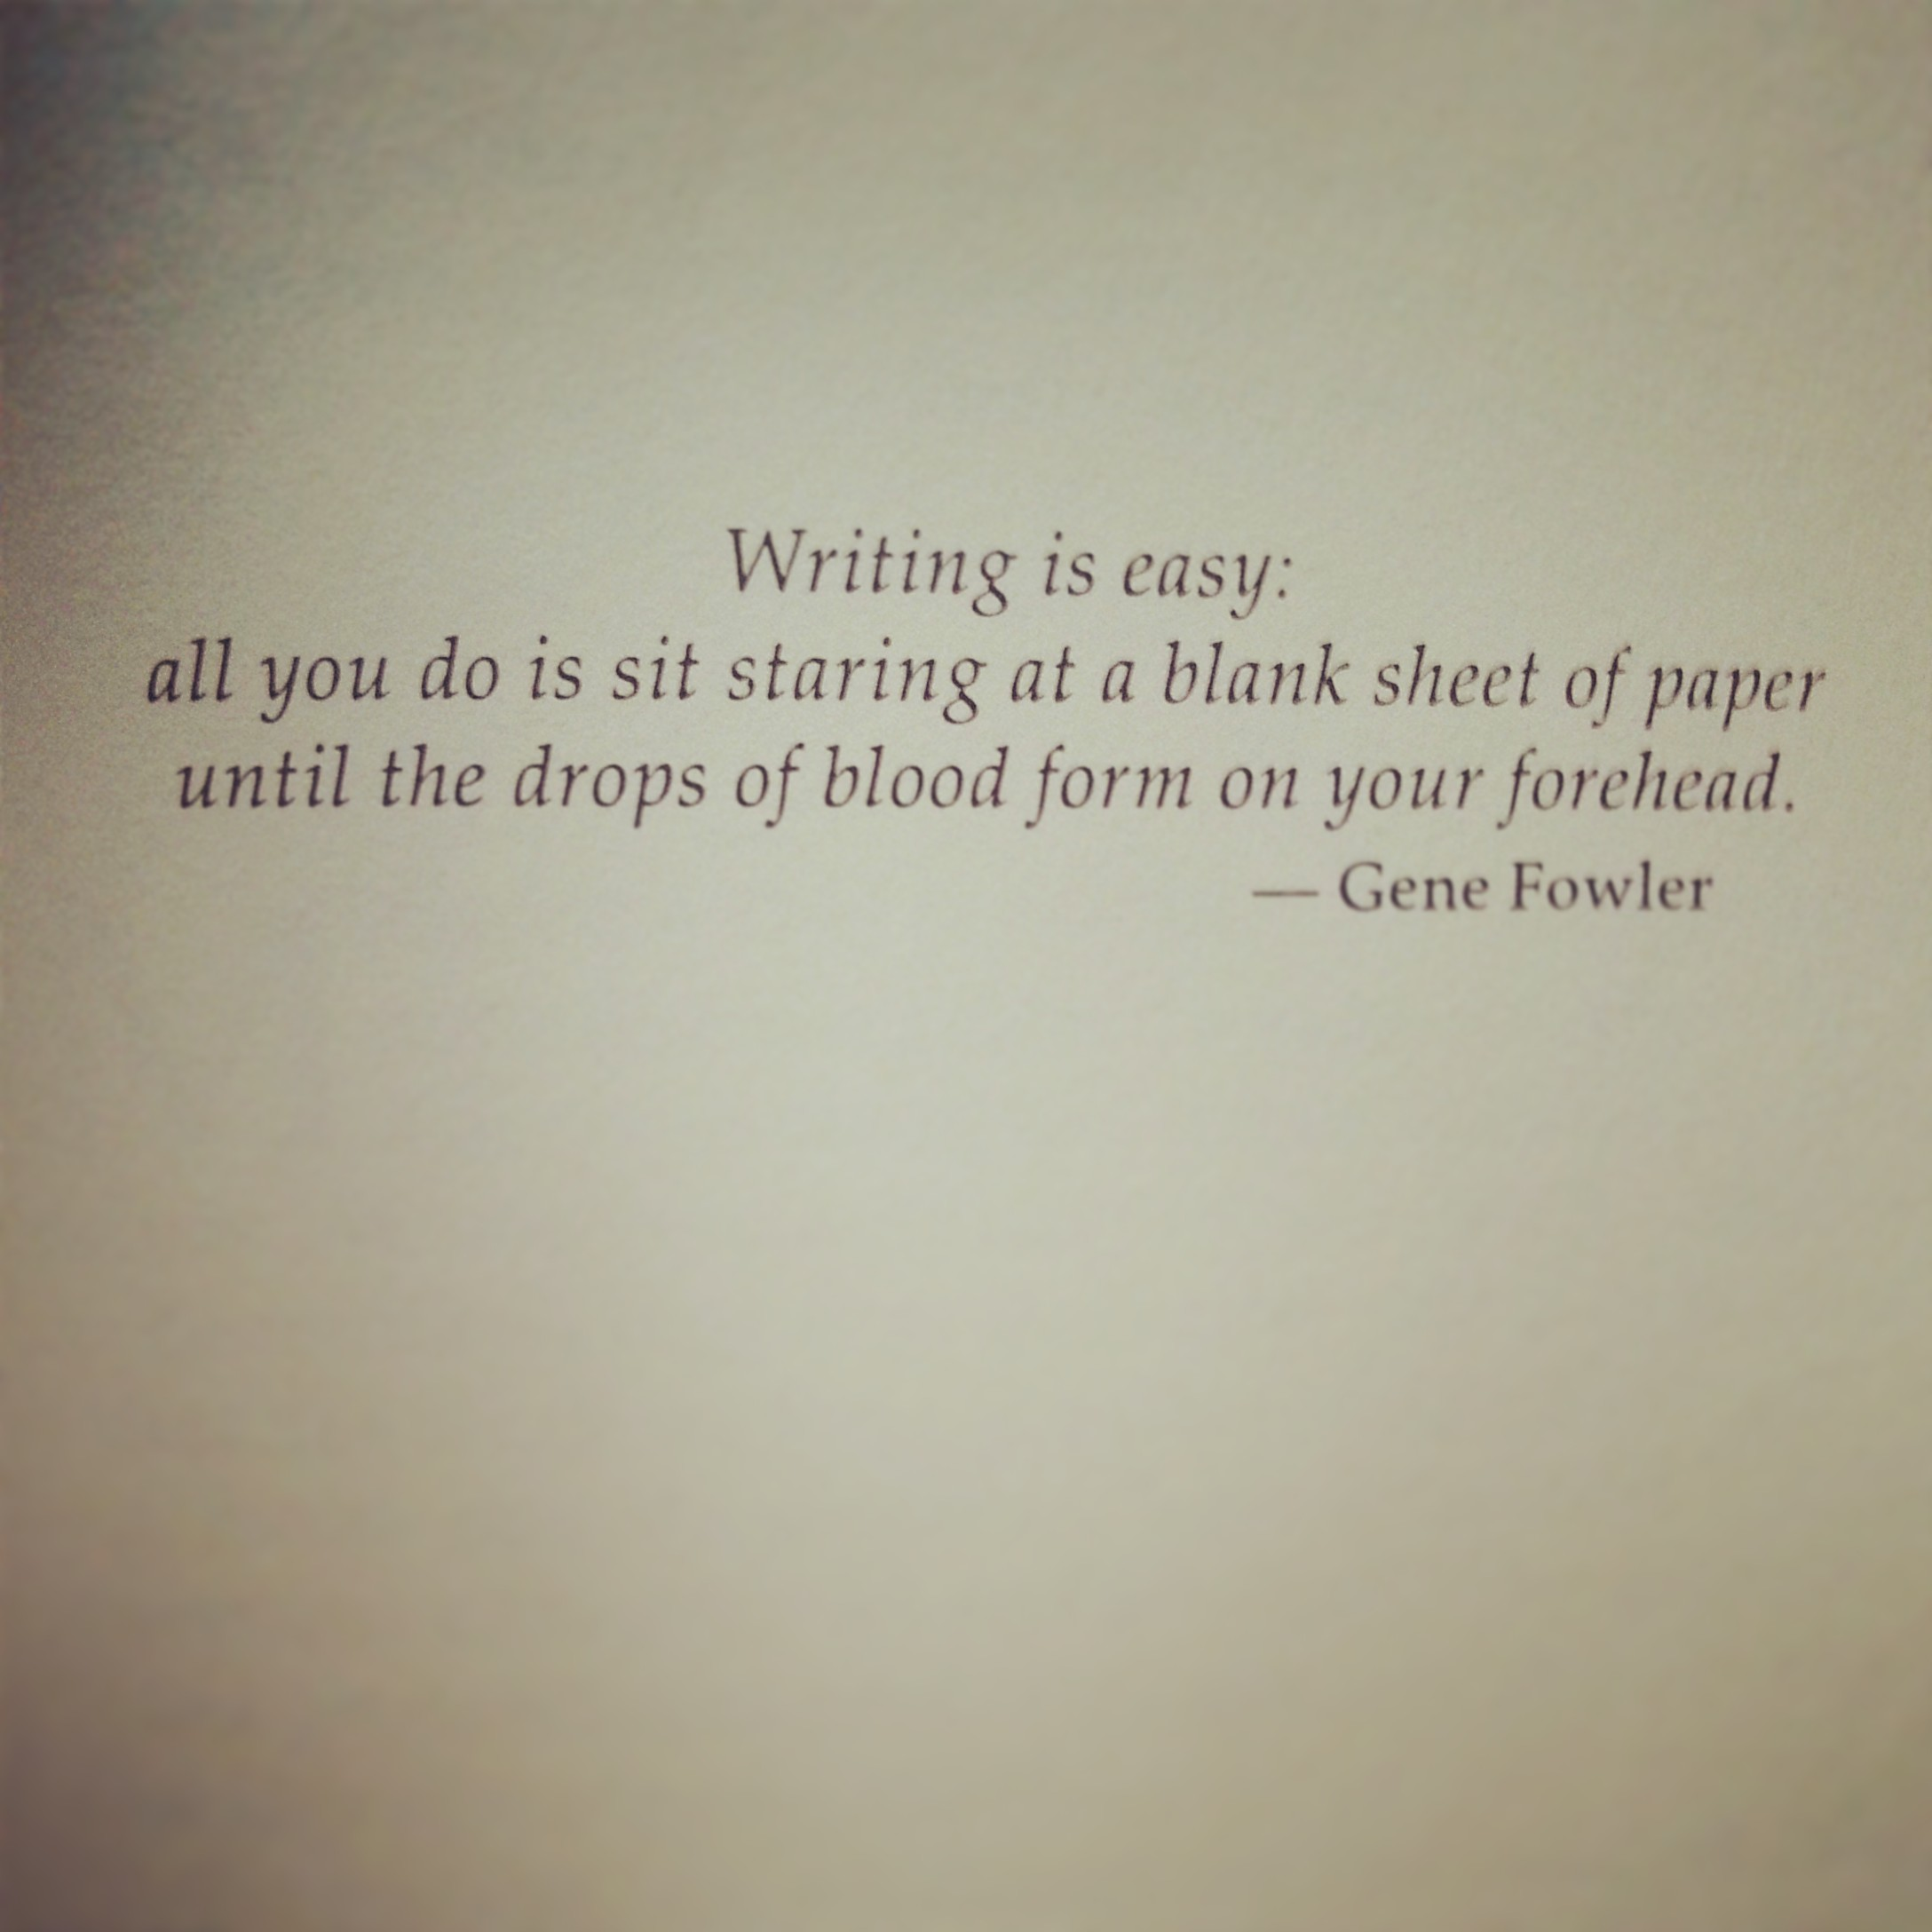 One of my favorite quotes on writing.